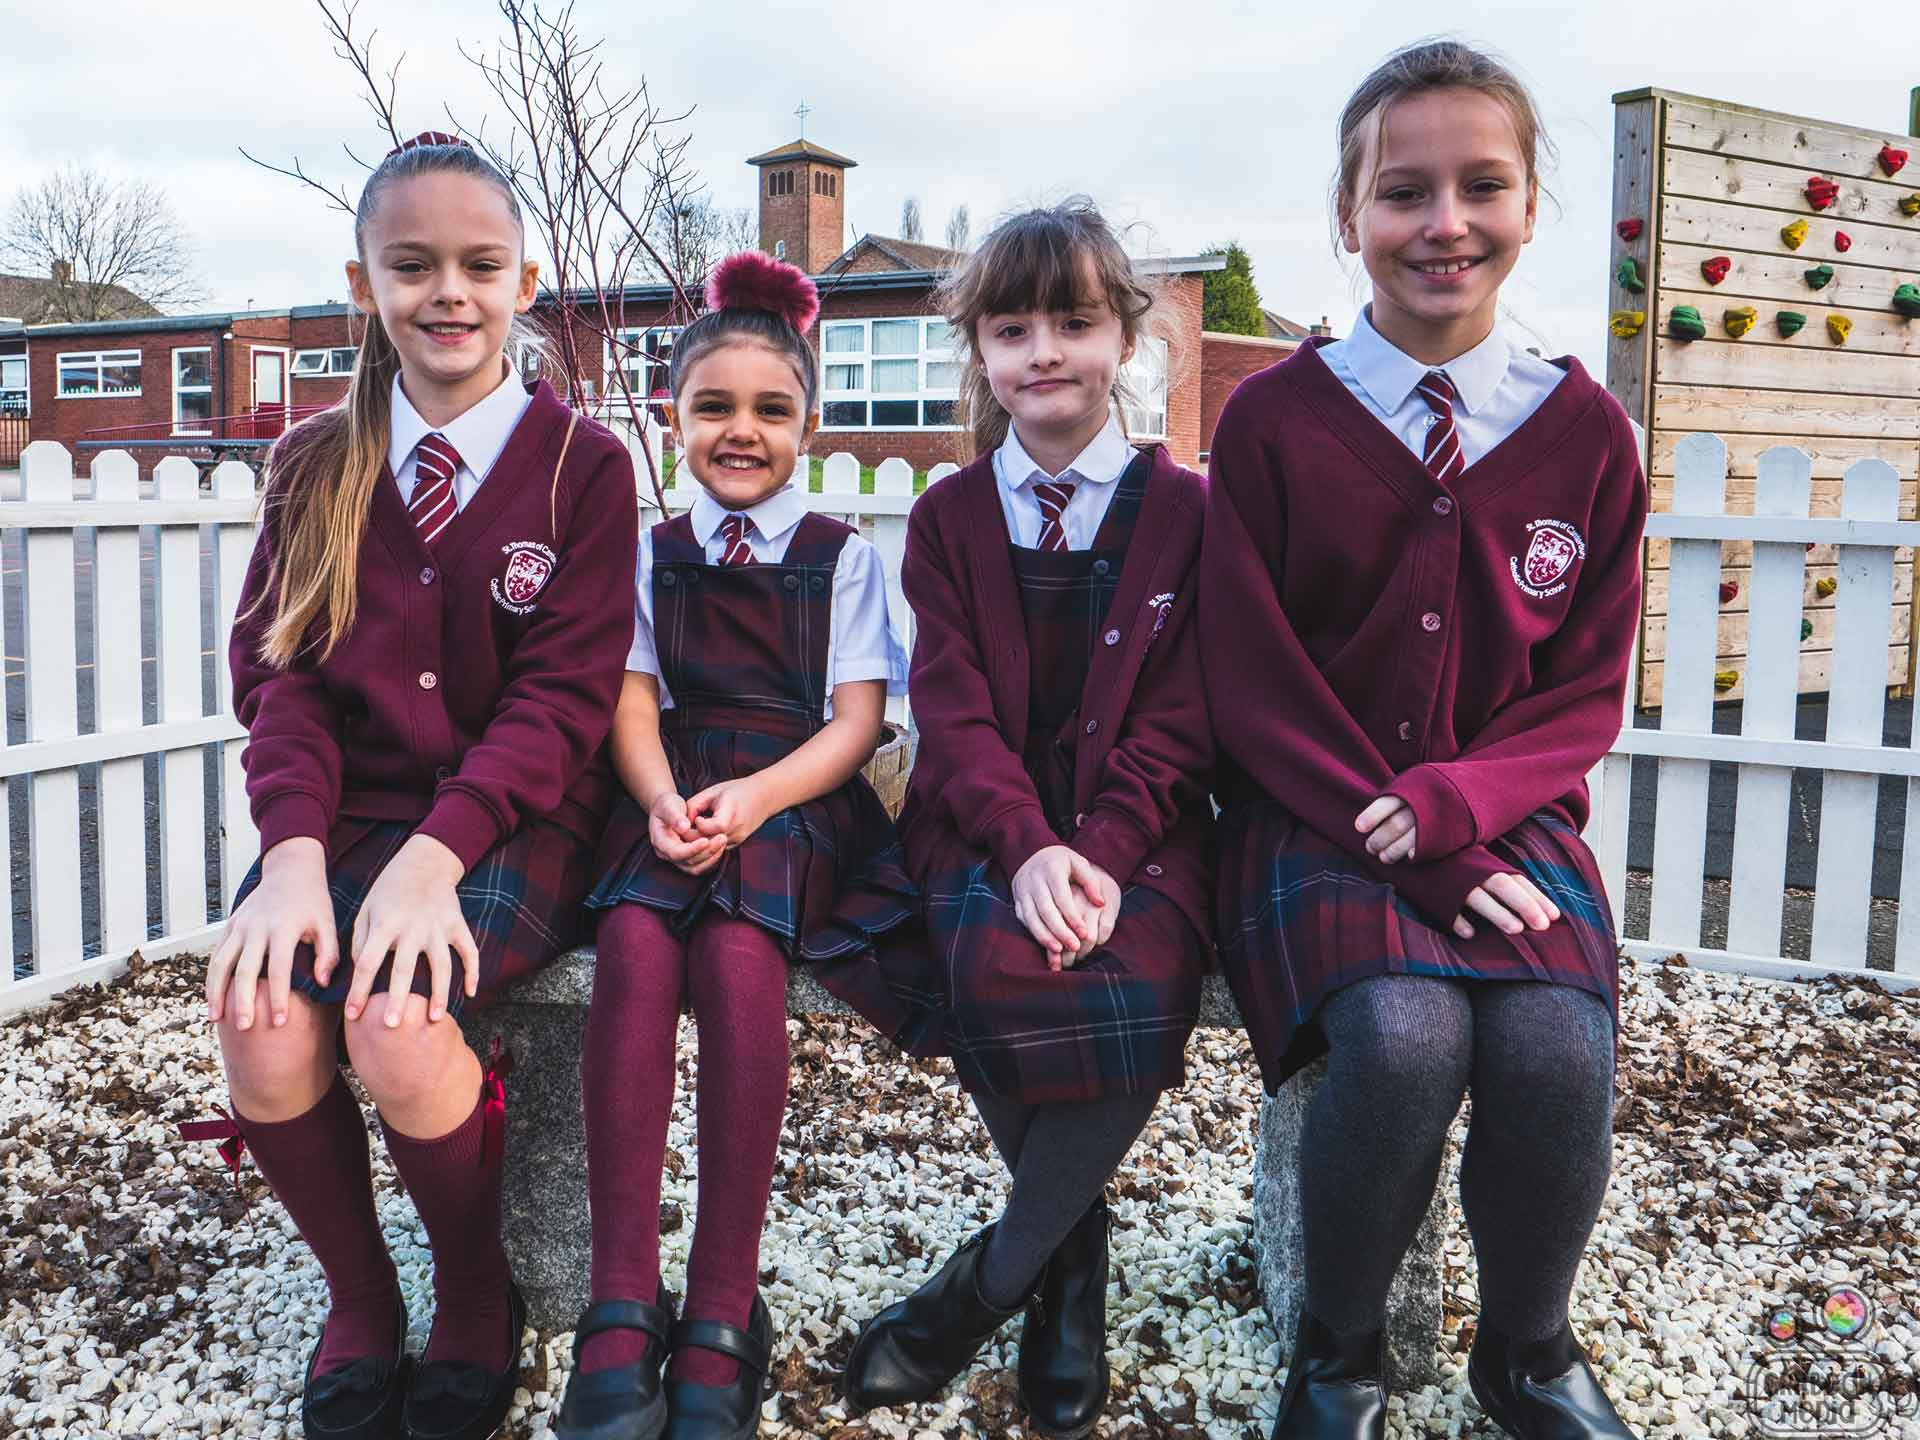 Life at St. Thomas of Canterbury Primary School, Walsall